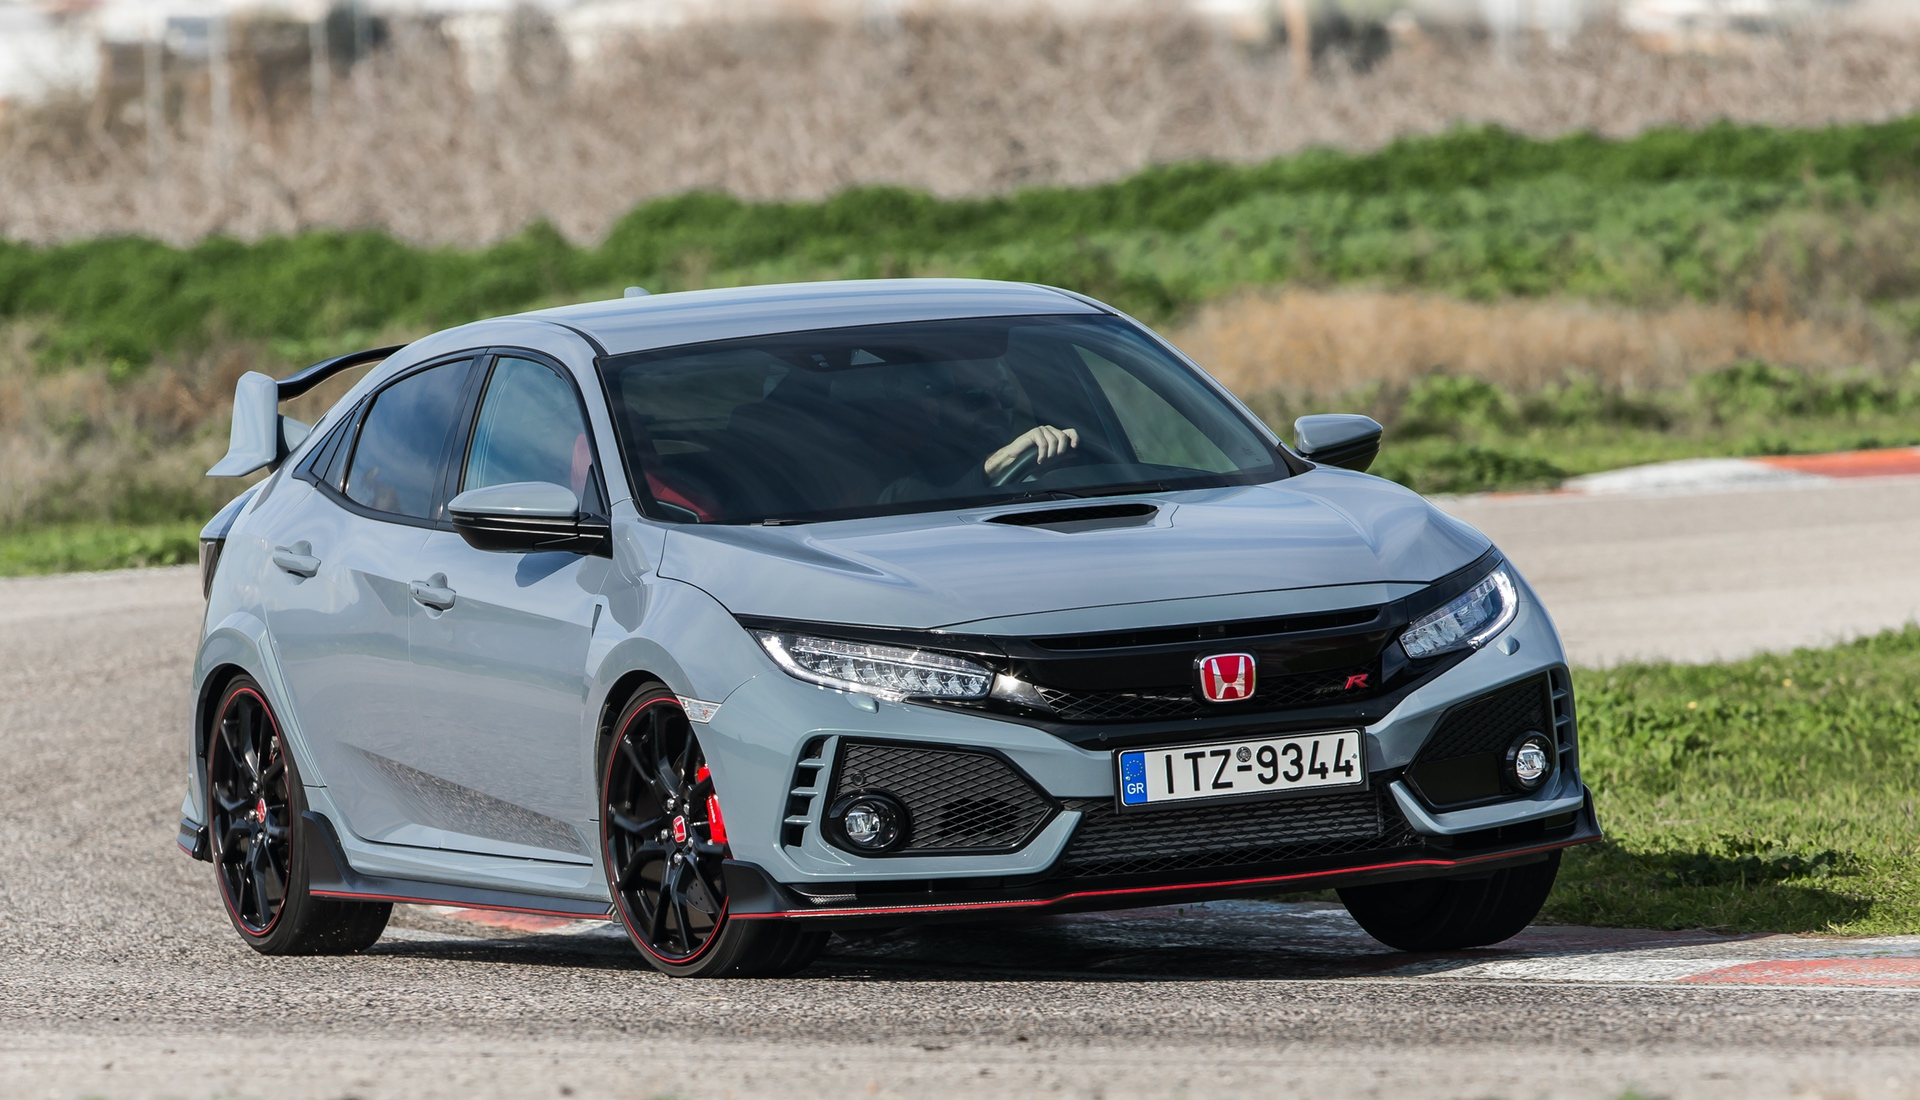 Track_Test_Honda_Civic_Type_R_073